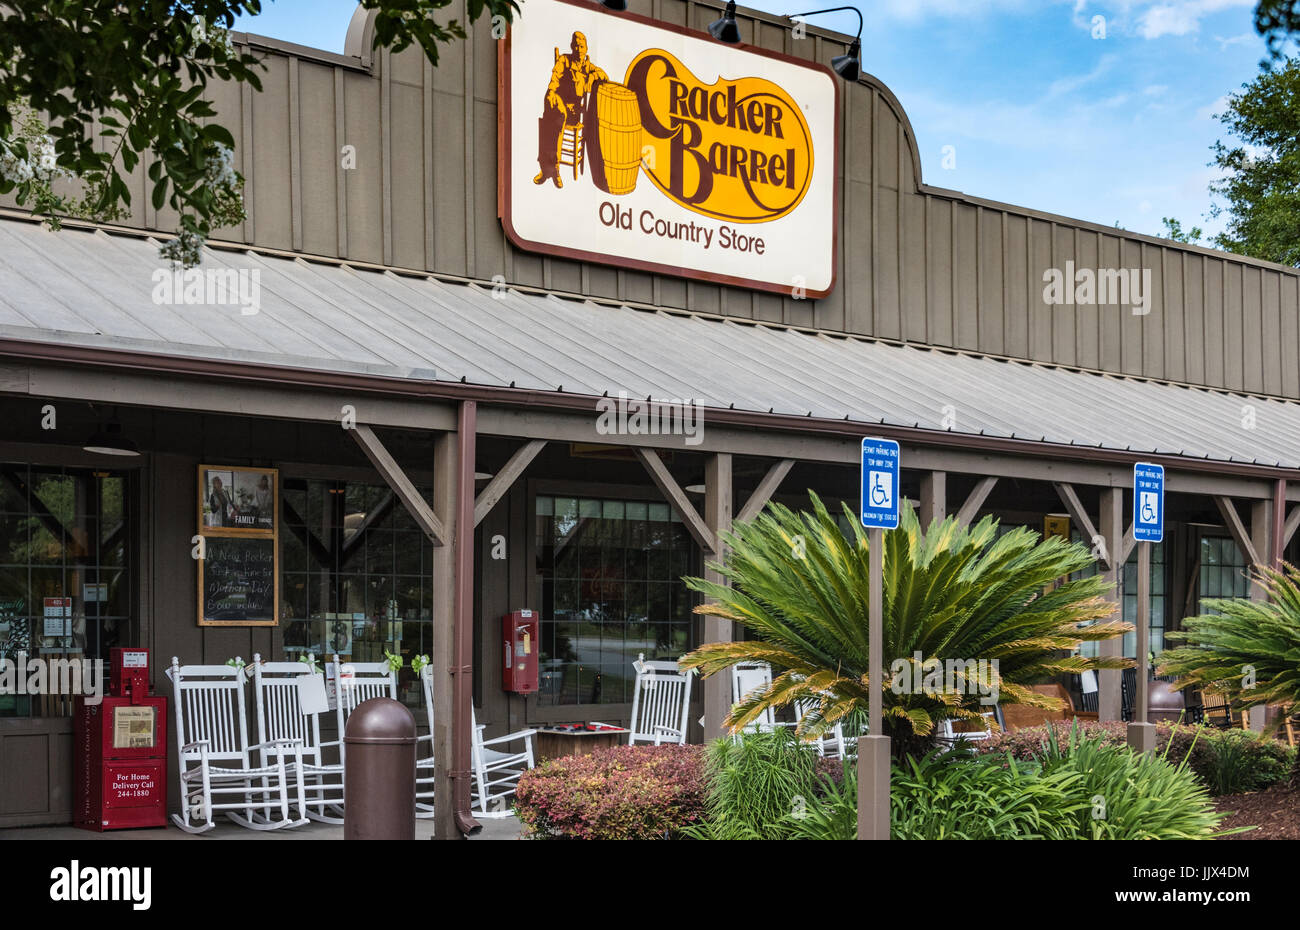 Cracker Barrel Restaurant And Old Country Store In Valdosta